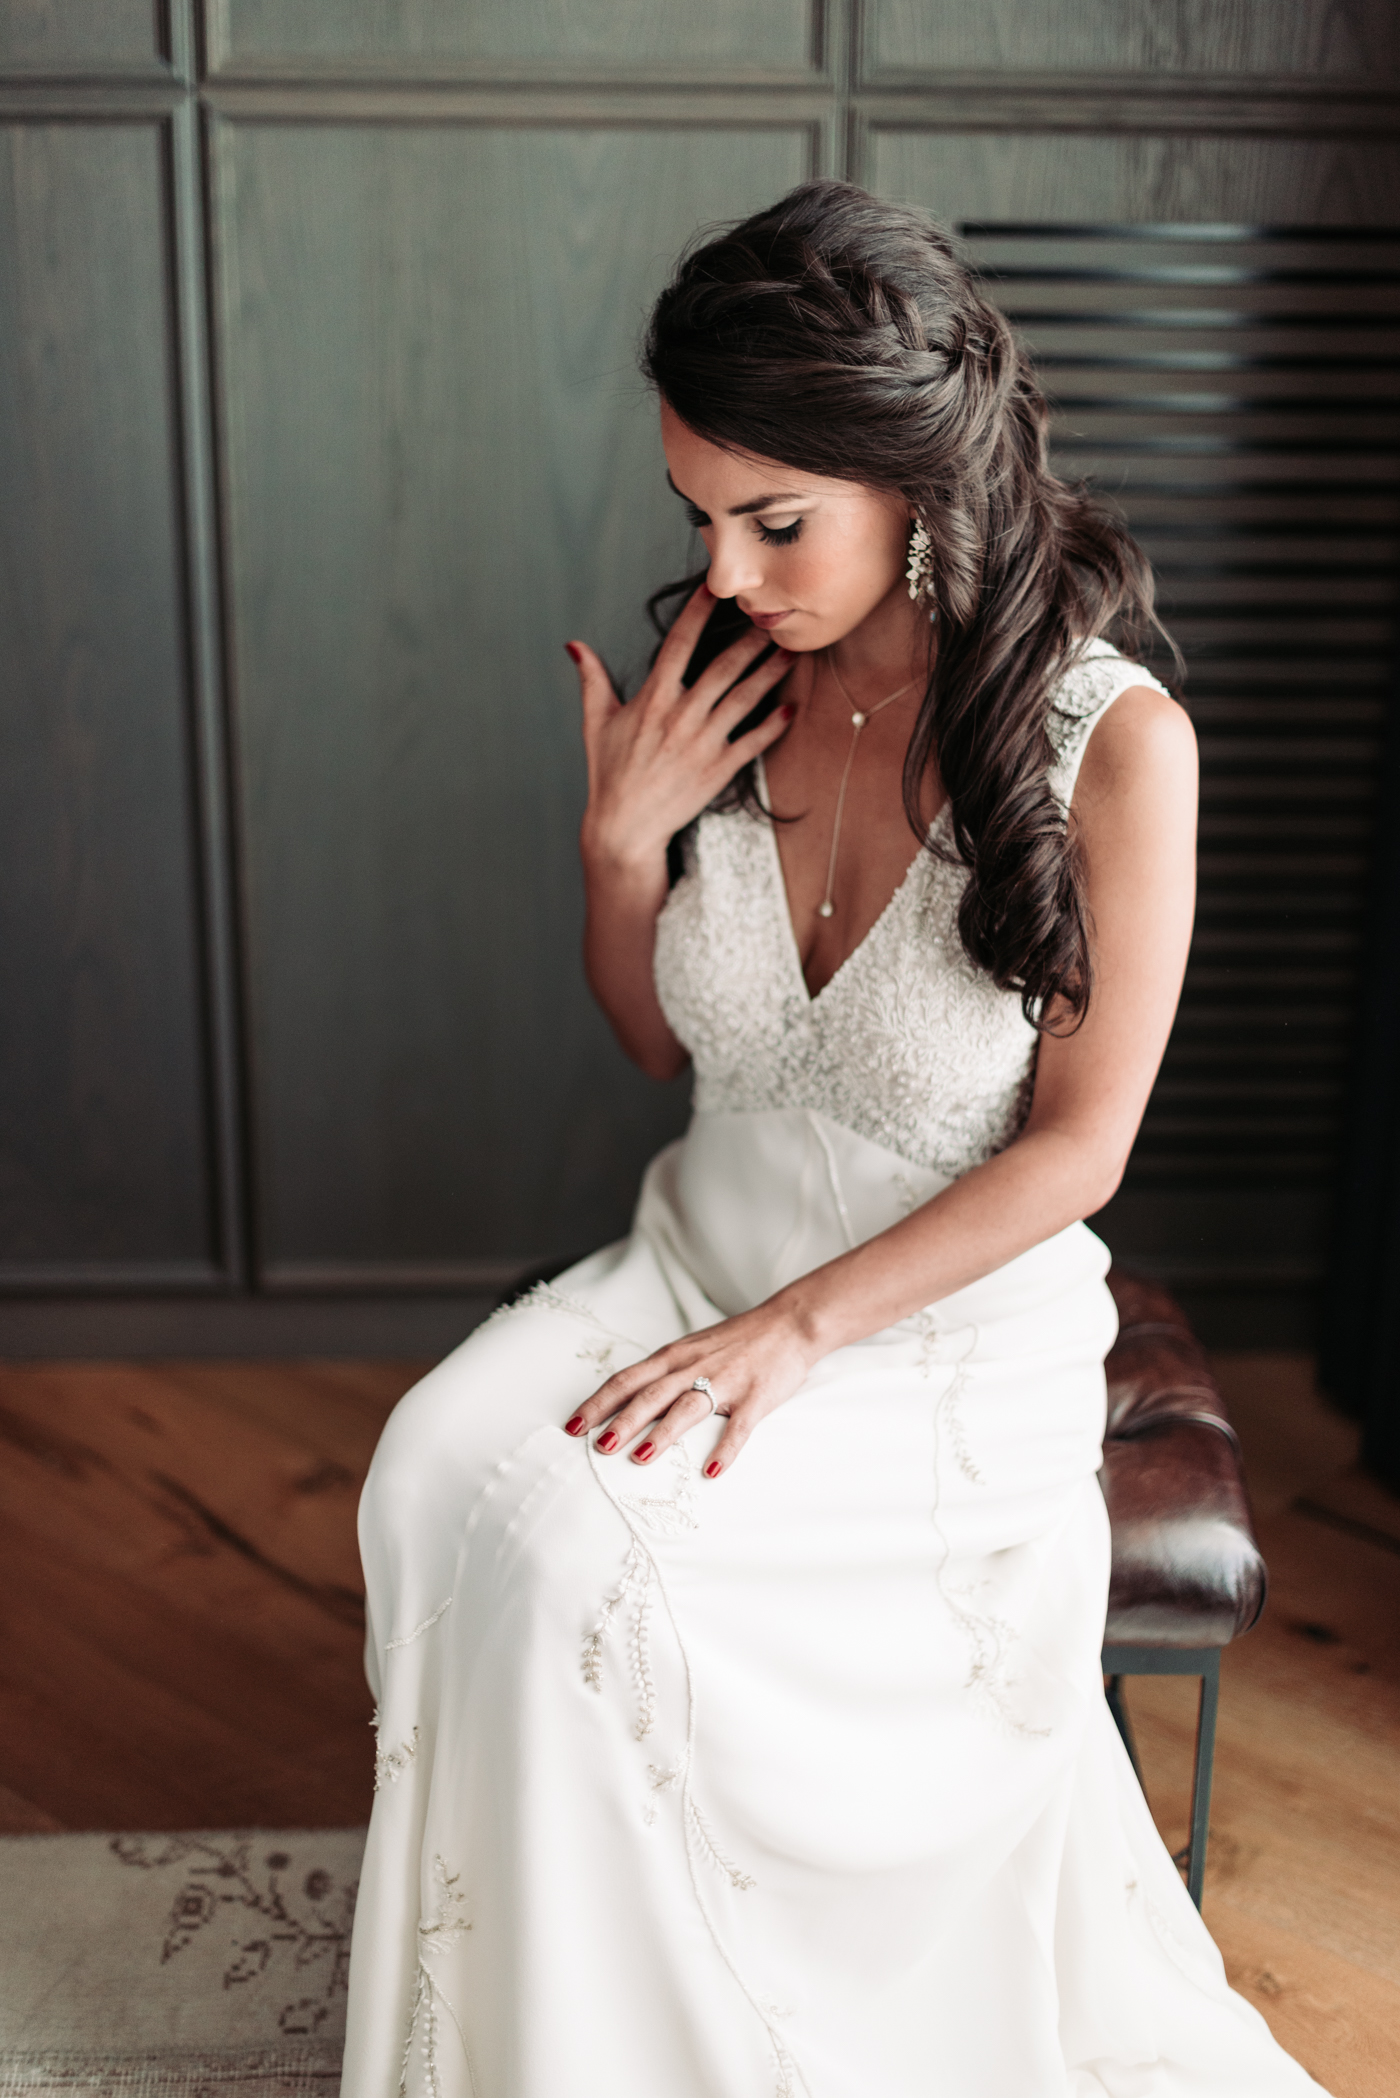 Bridal portrait Bennett Brown photography wedding bridal gown bride